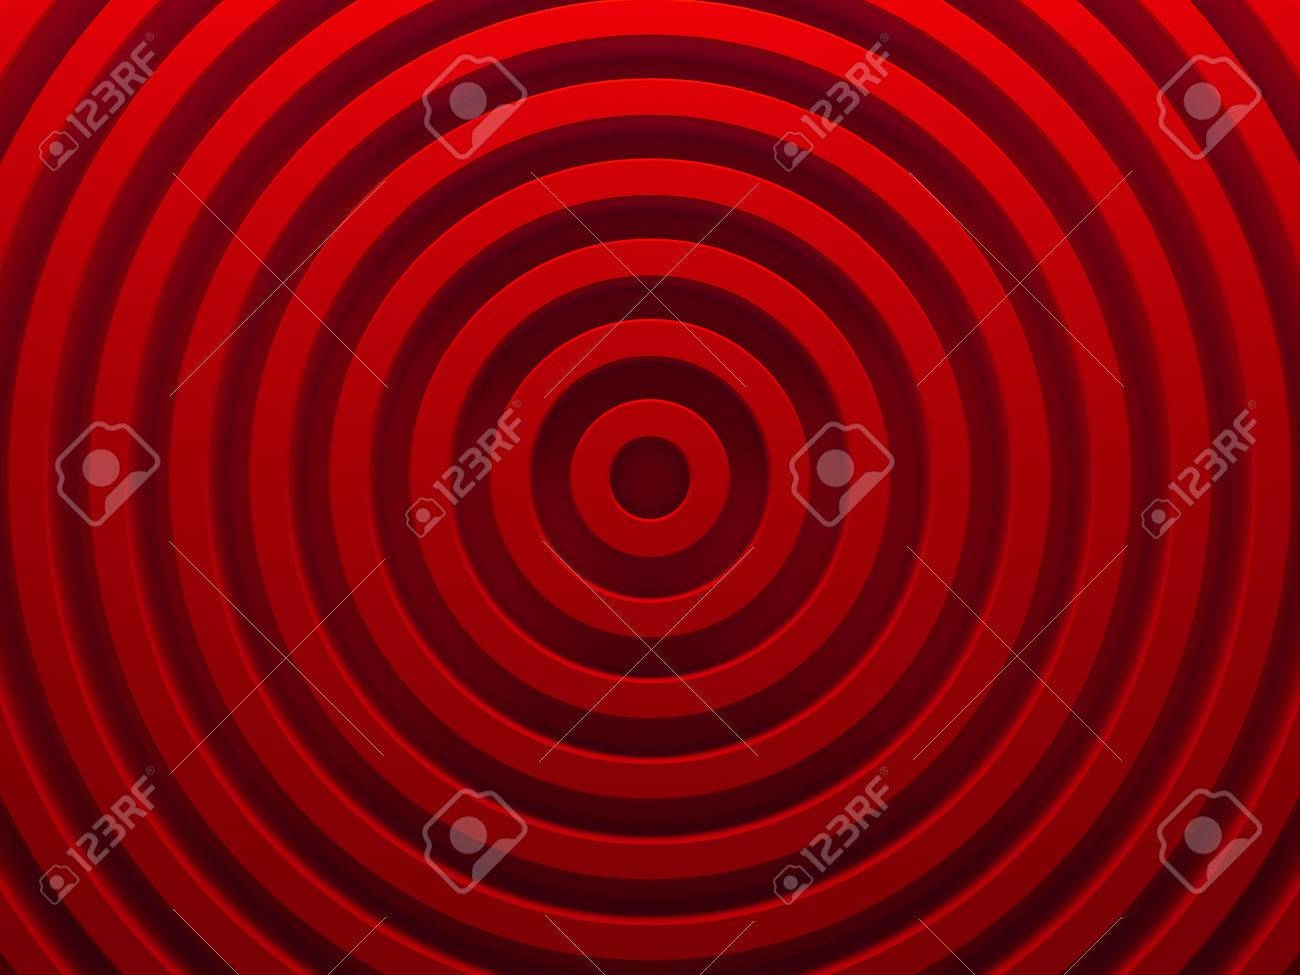 Red Abstract Radial Background 3d Illustration This Image Works